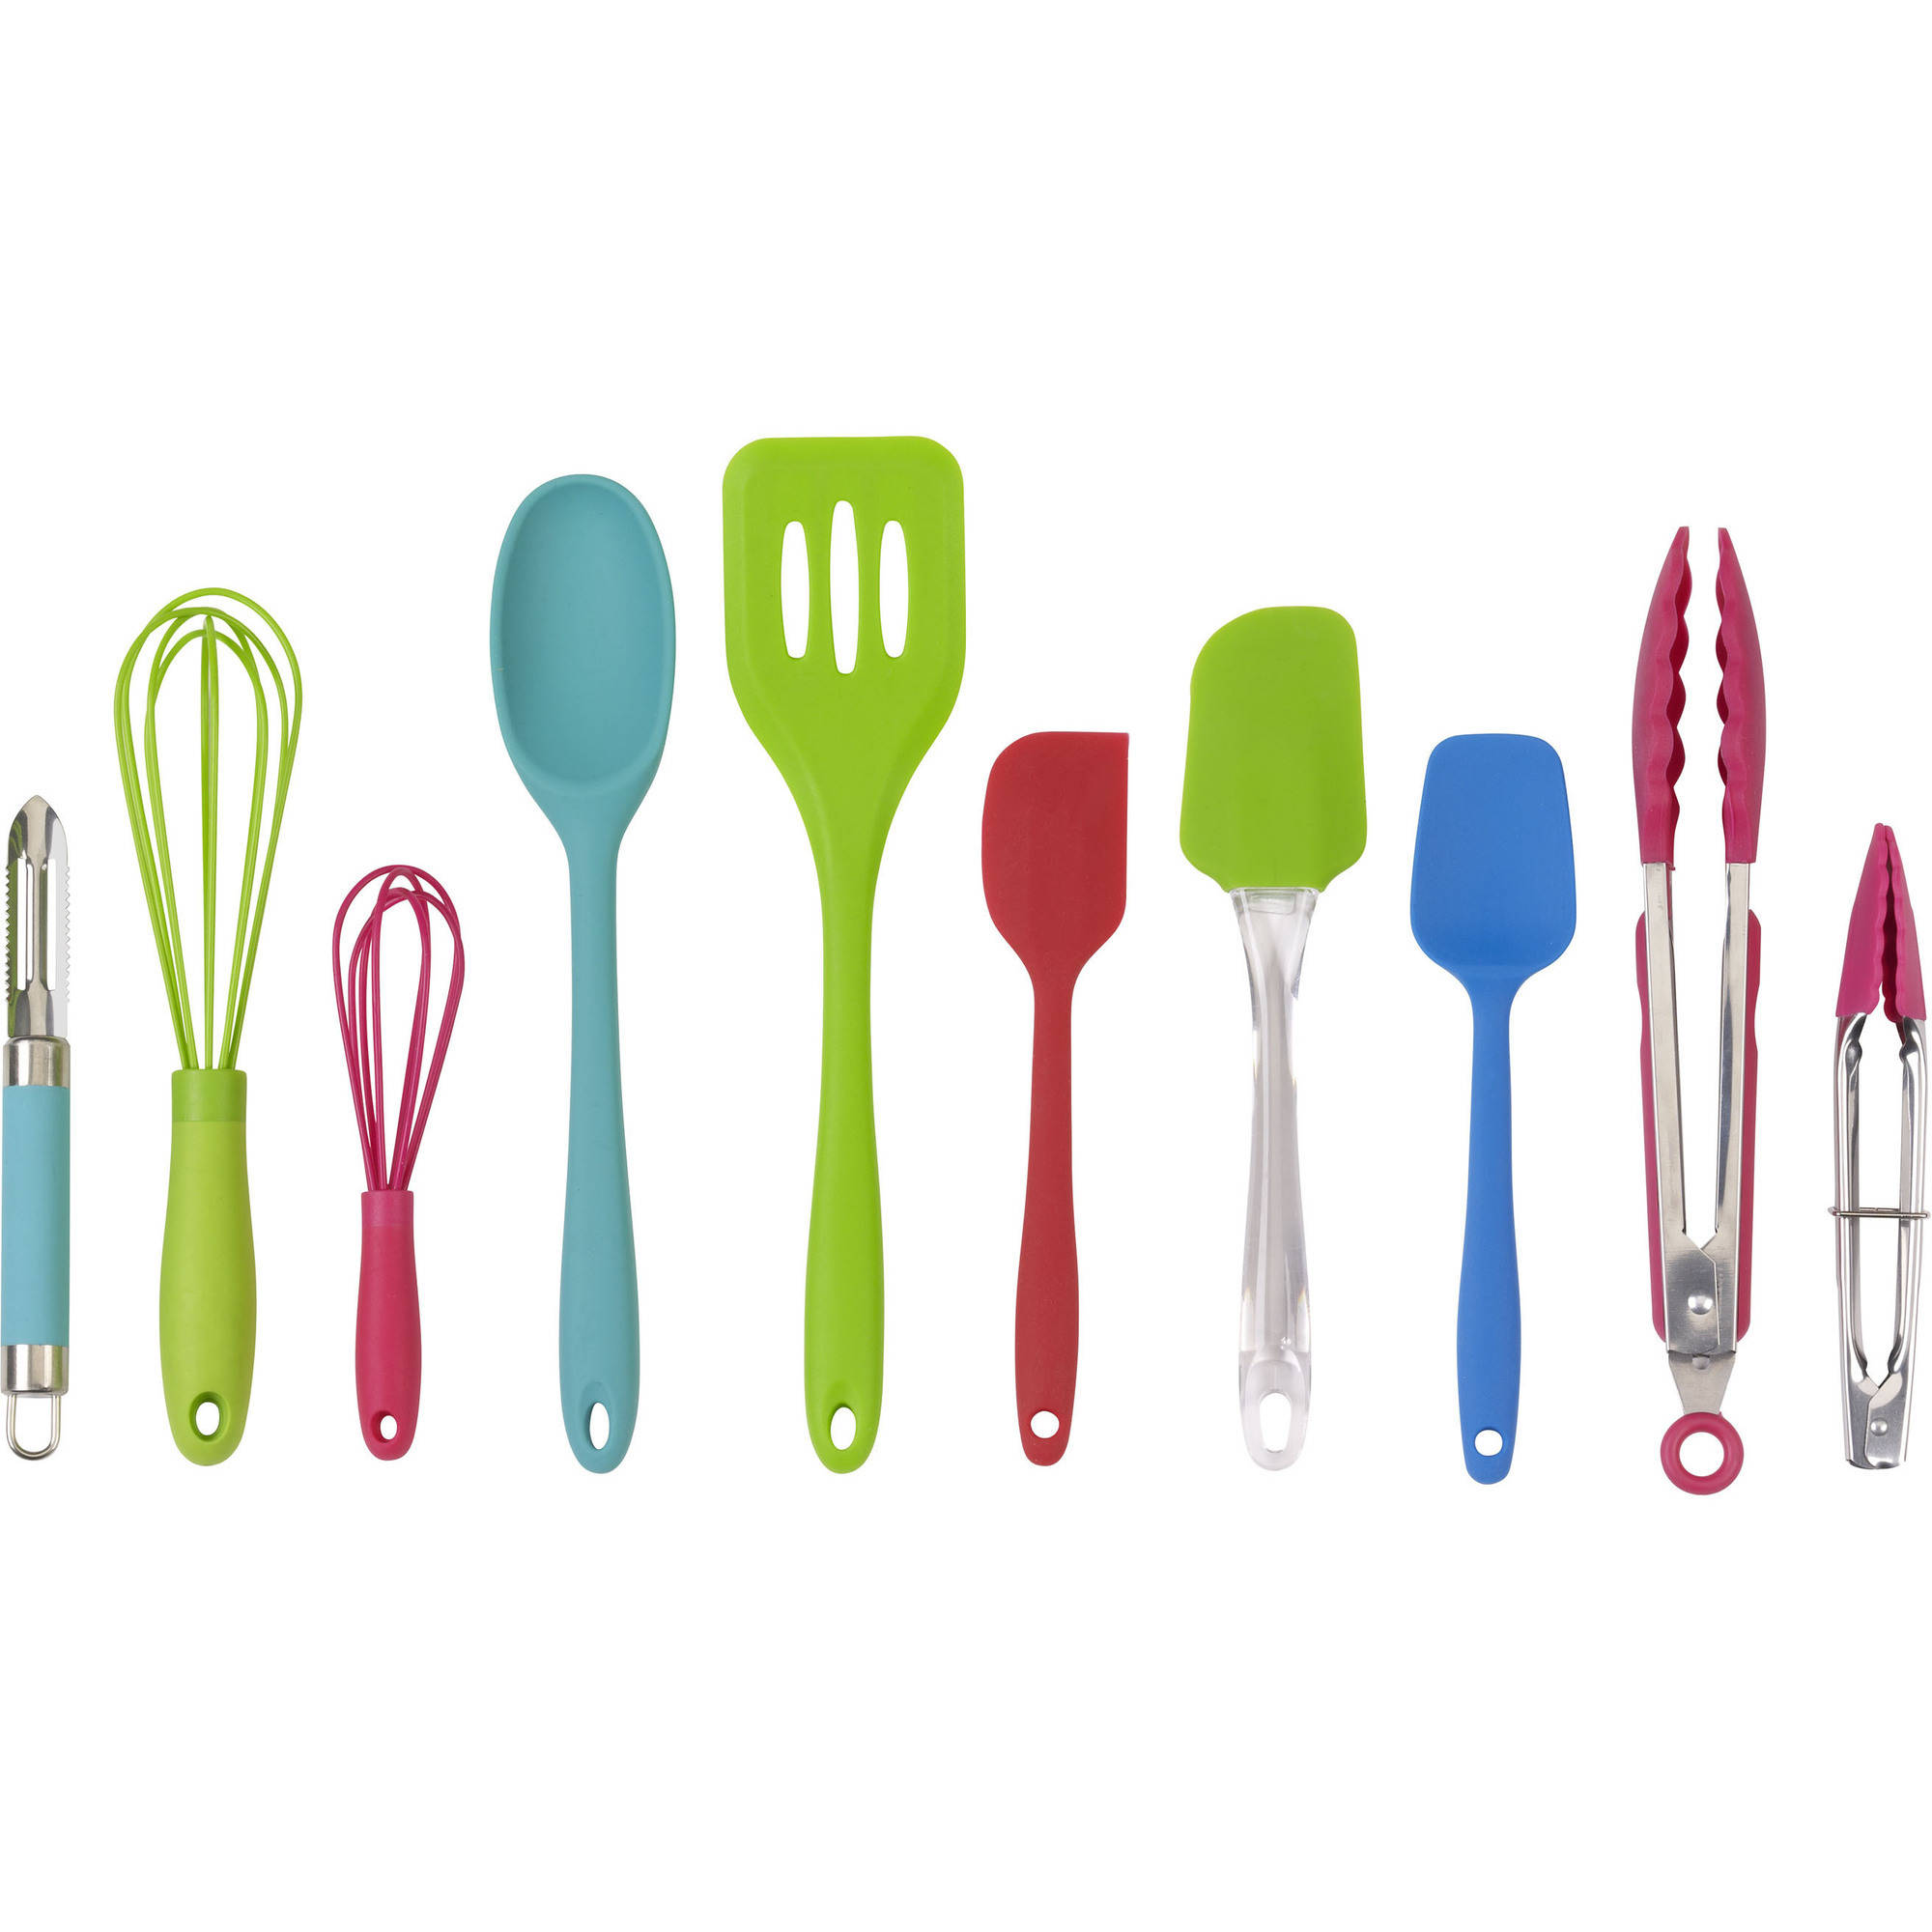 Mainstays 10-Piece Gadget Set